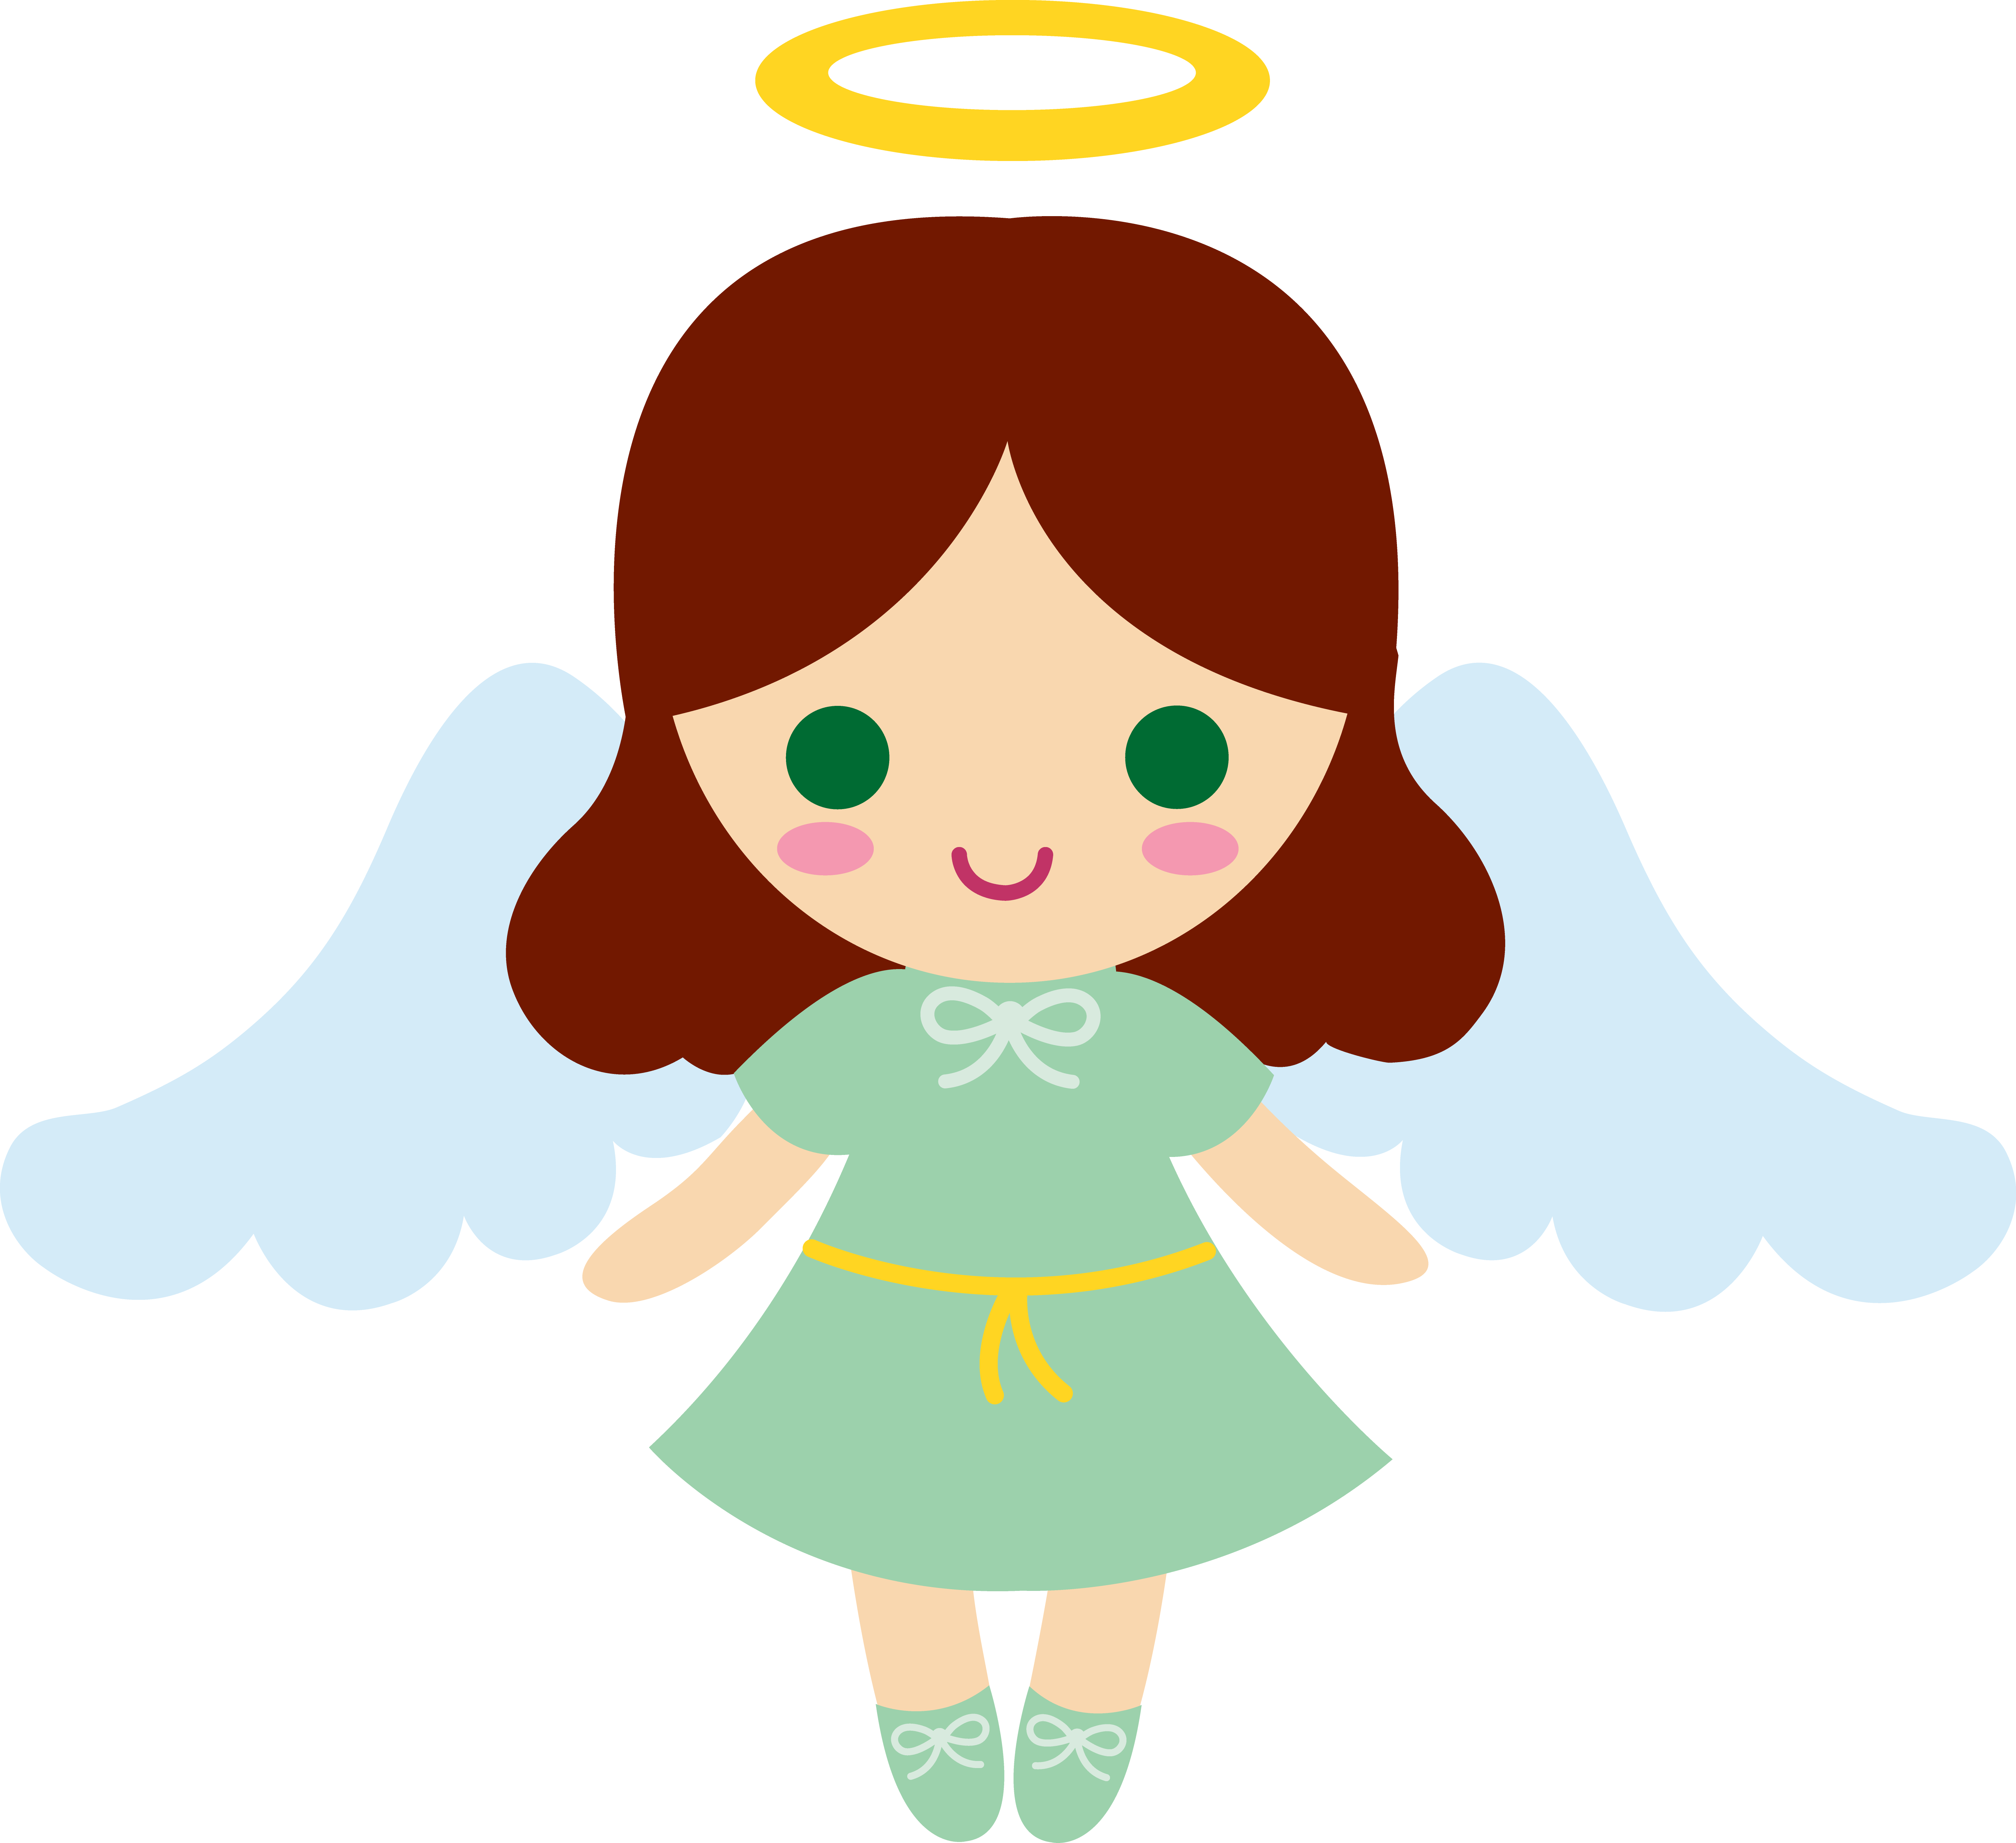 Christmas angel clipart free jpg freeuse download Cartoon Angel Clipart at GetDrawings.com | Free for personal use ... jpg freeuse download